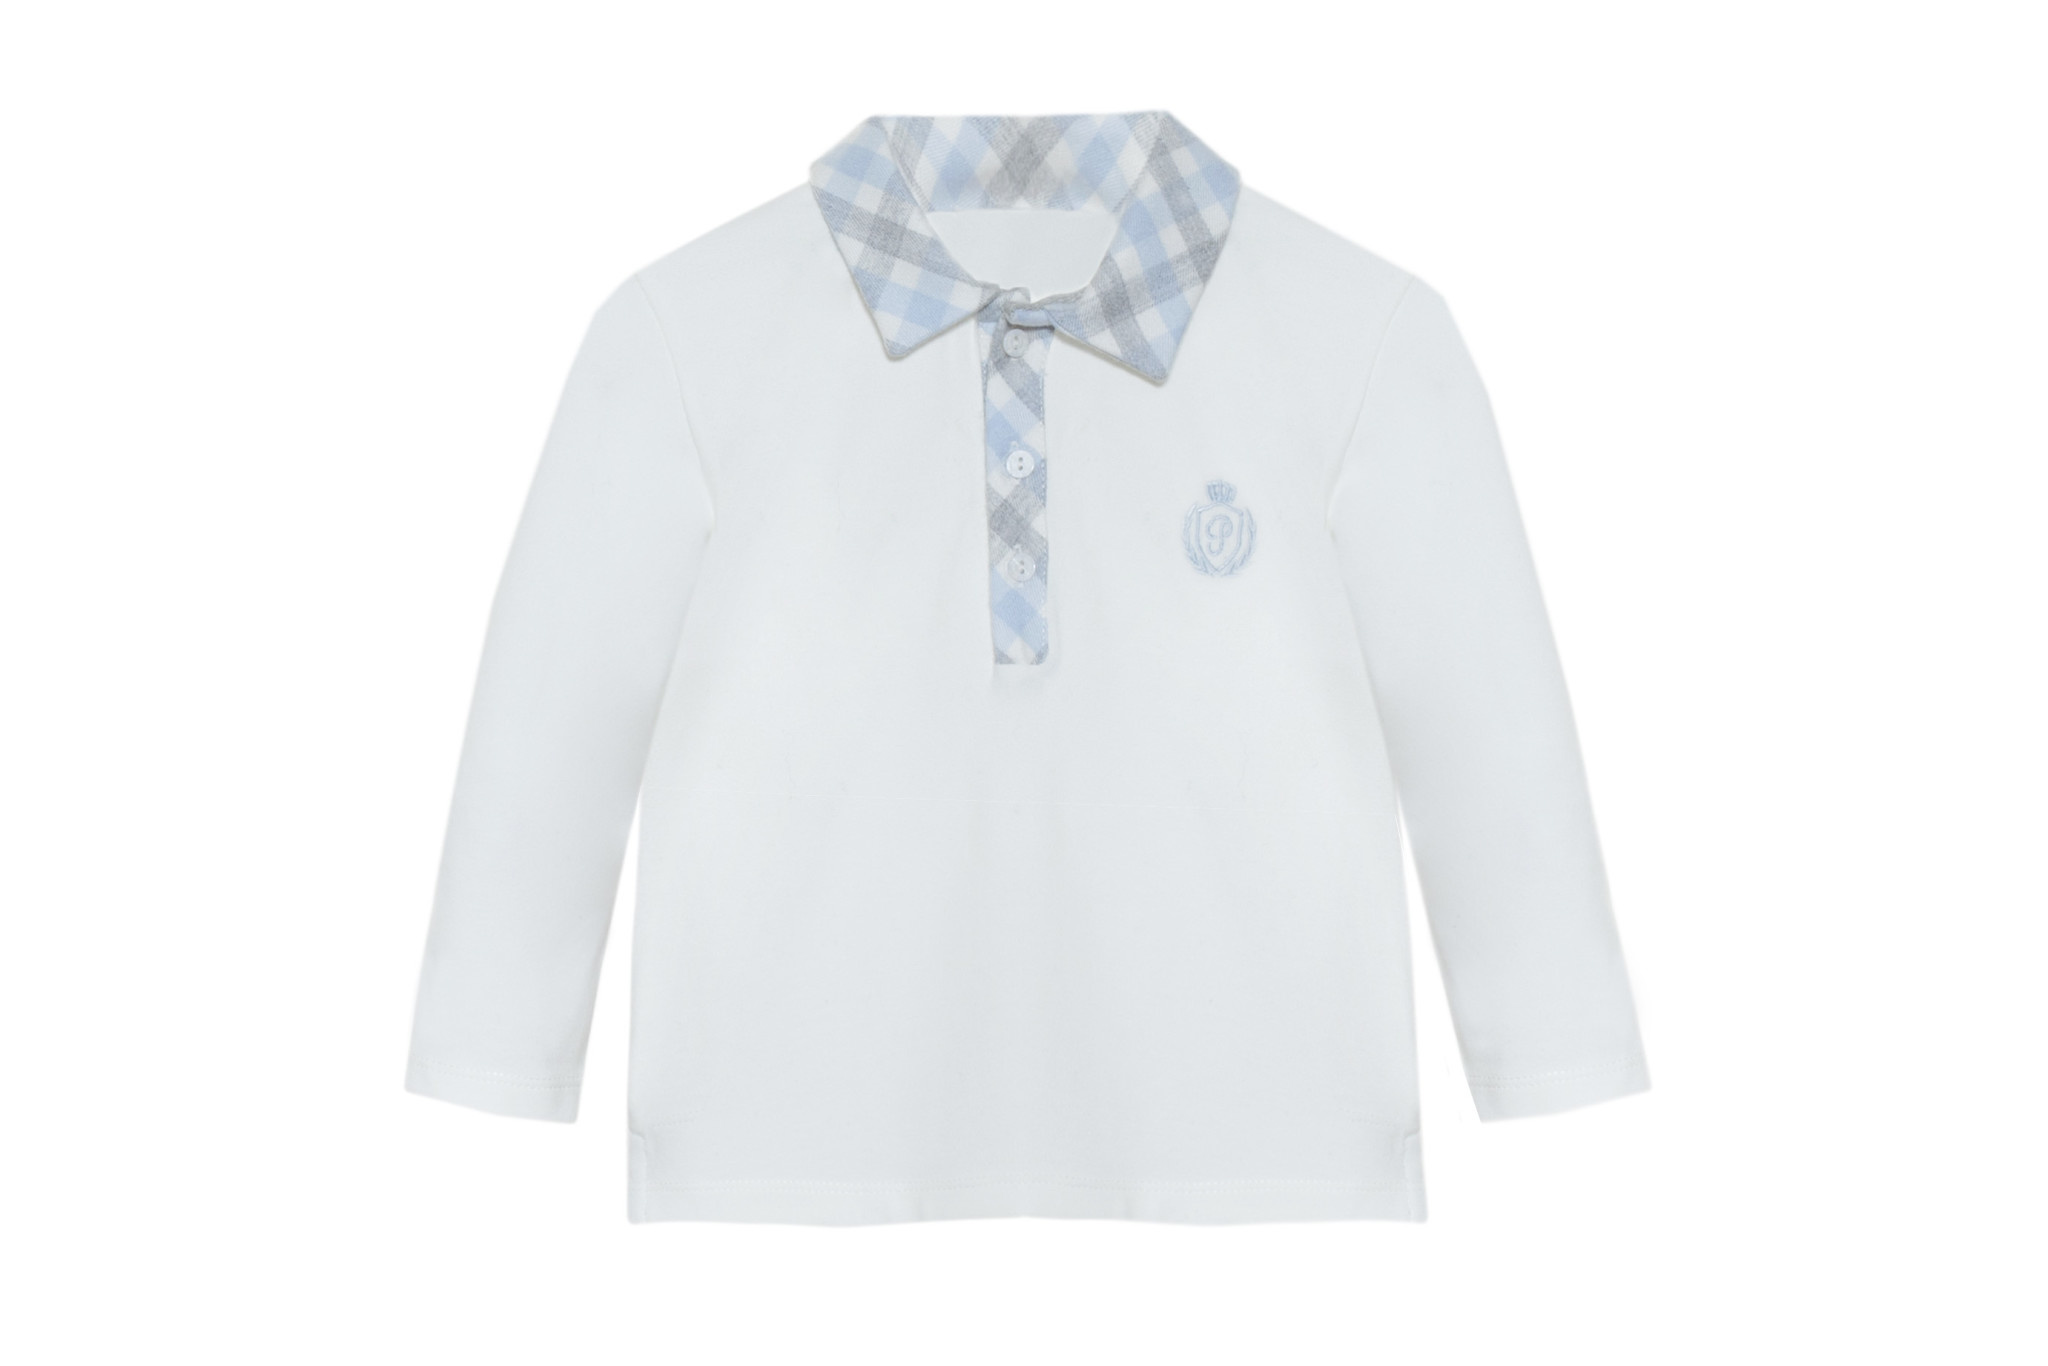 Patachou Patachou  Winter White Top with Check  Collar